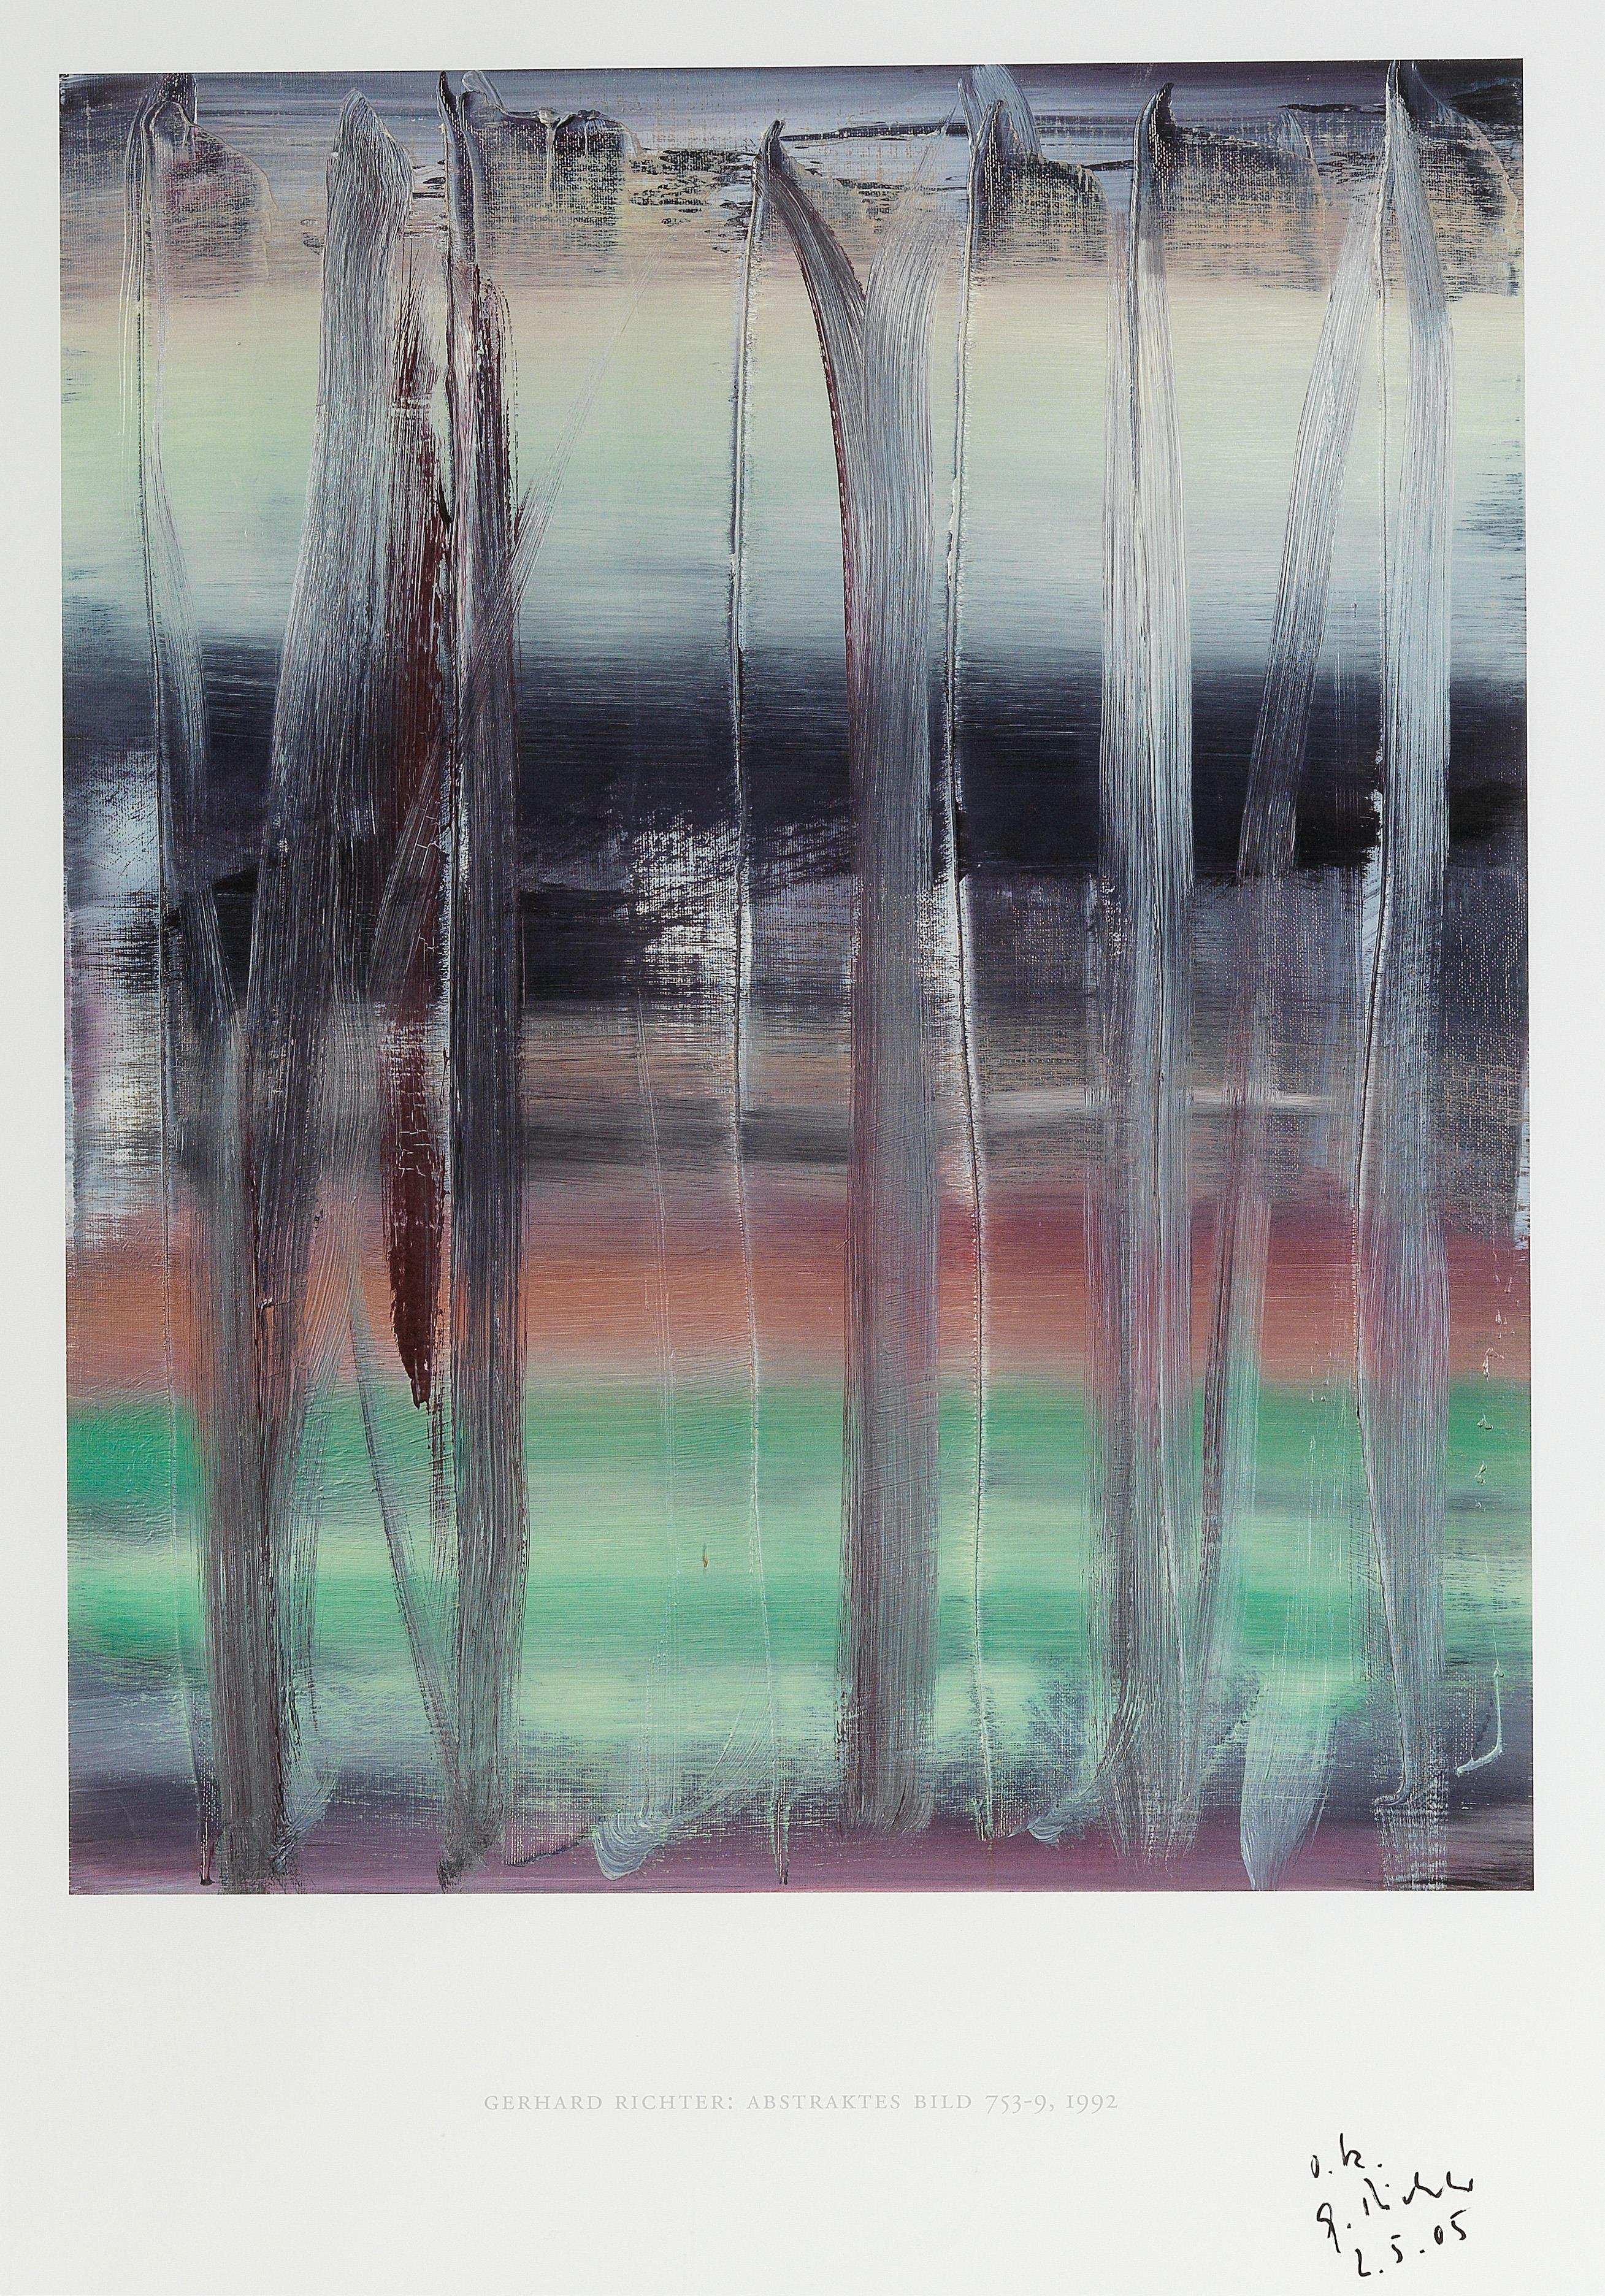 Gerhard Richter Contemporary Art Ii 2018 05 17 Realized Price Eur 3 750 Dorotheum